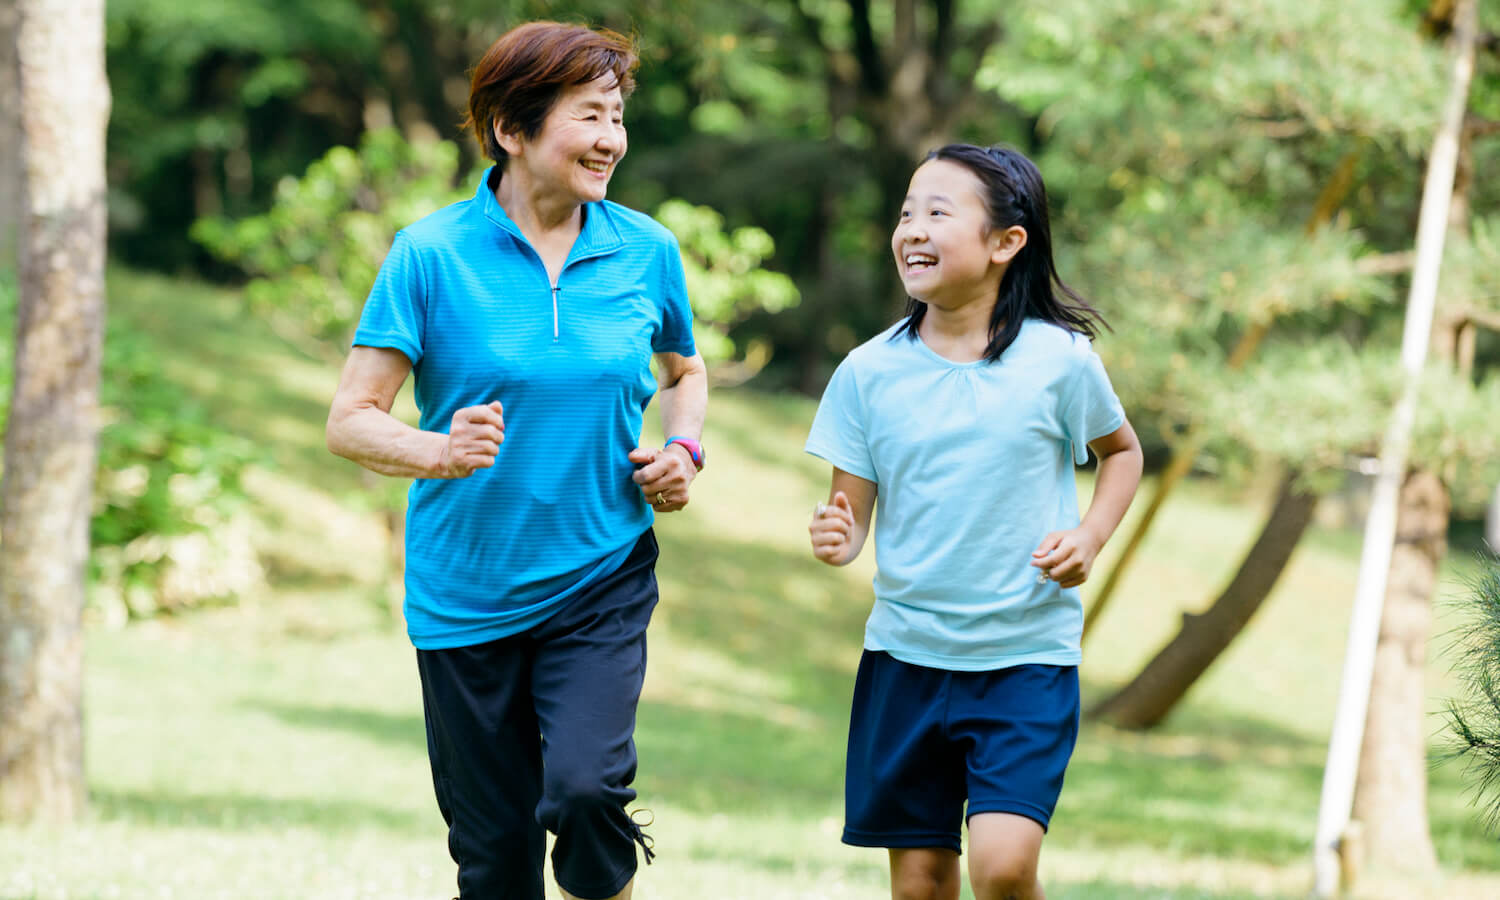 Japanese grandmother and granddaughter run through park together. Asian female senior and child runners.